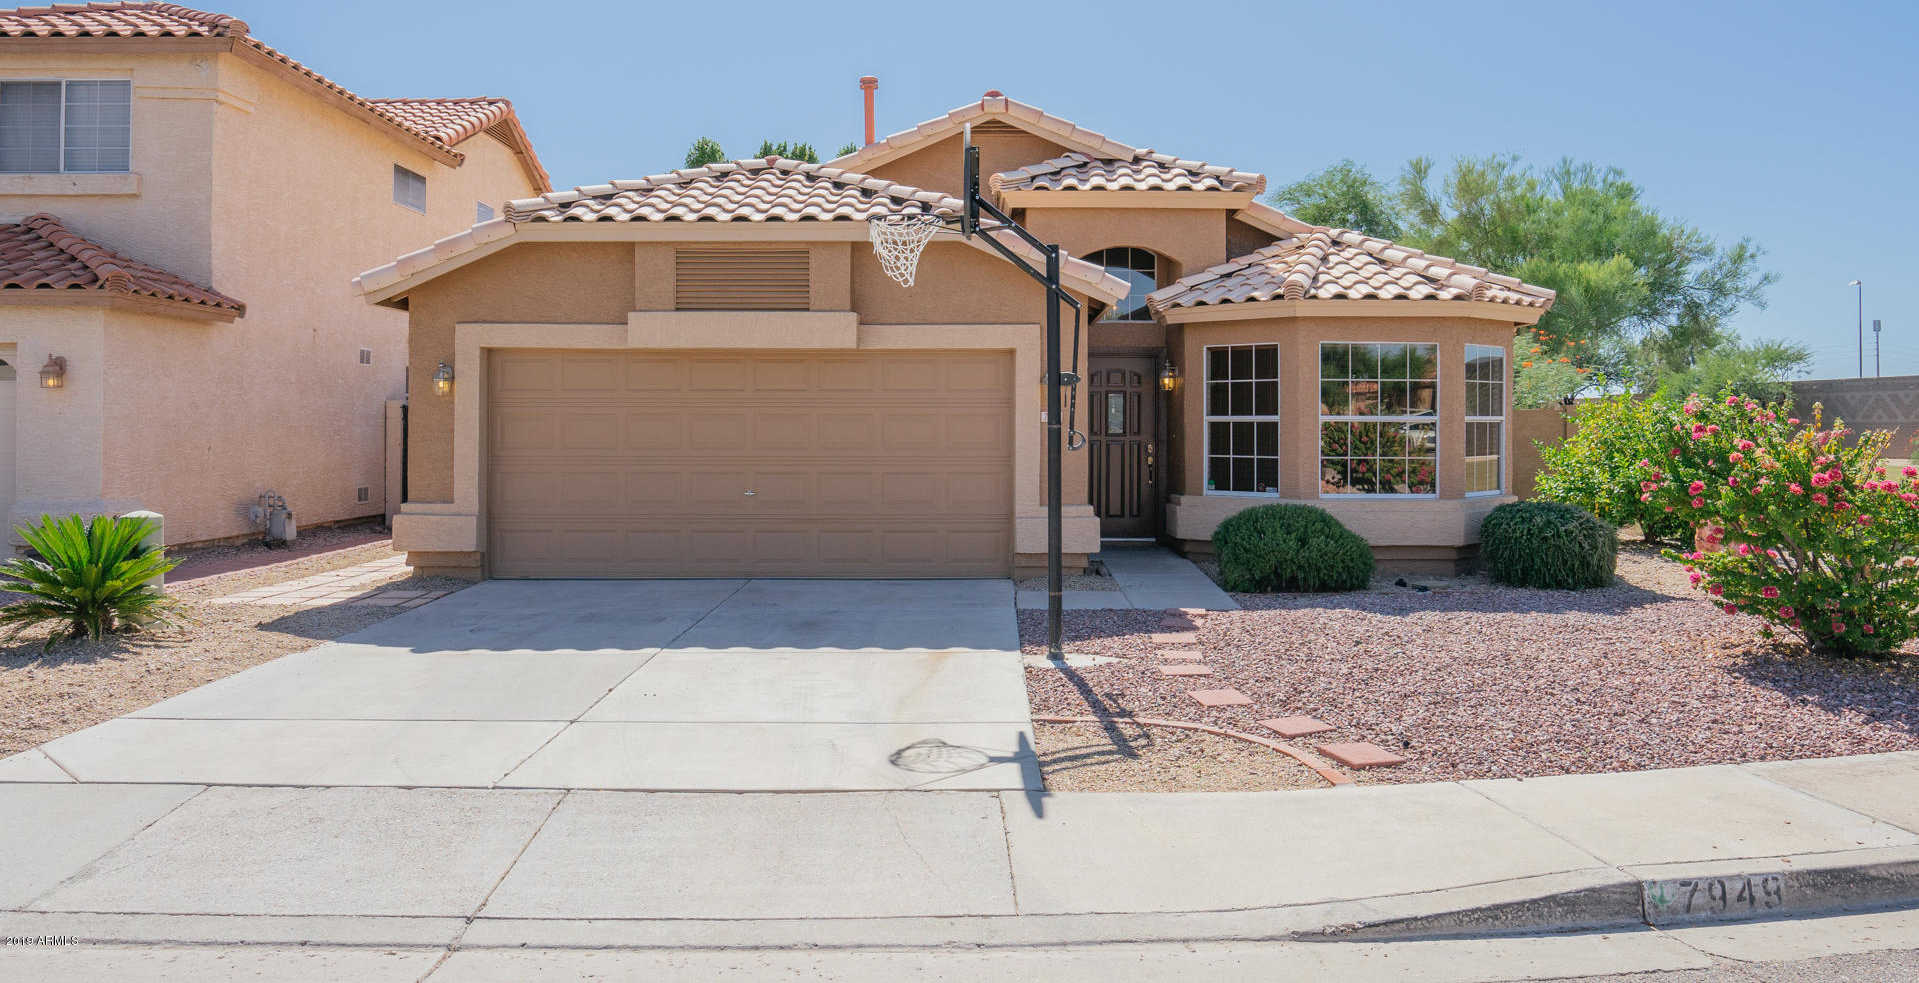 $320,000 - 3Br/2Ba - Home for Sale in Continental At Arrowhead Ranch, Glendale